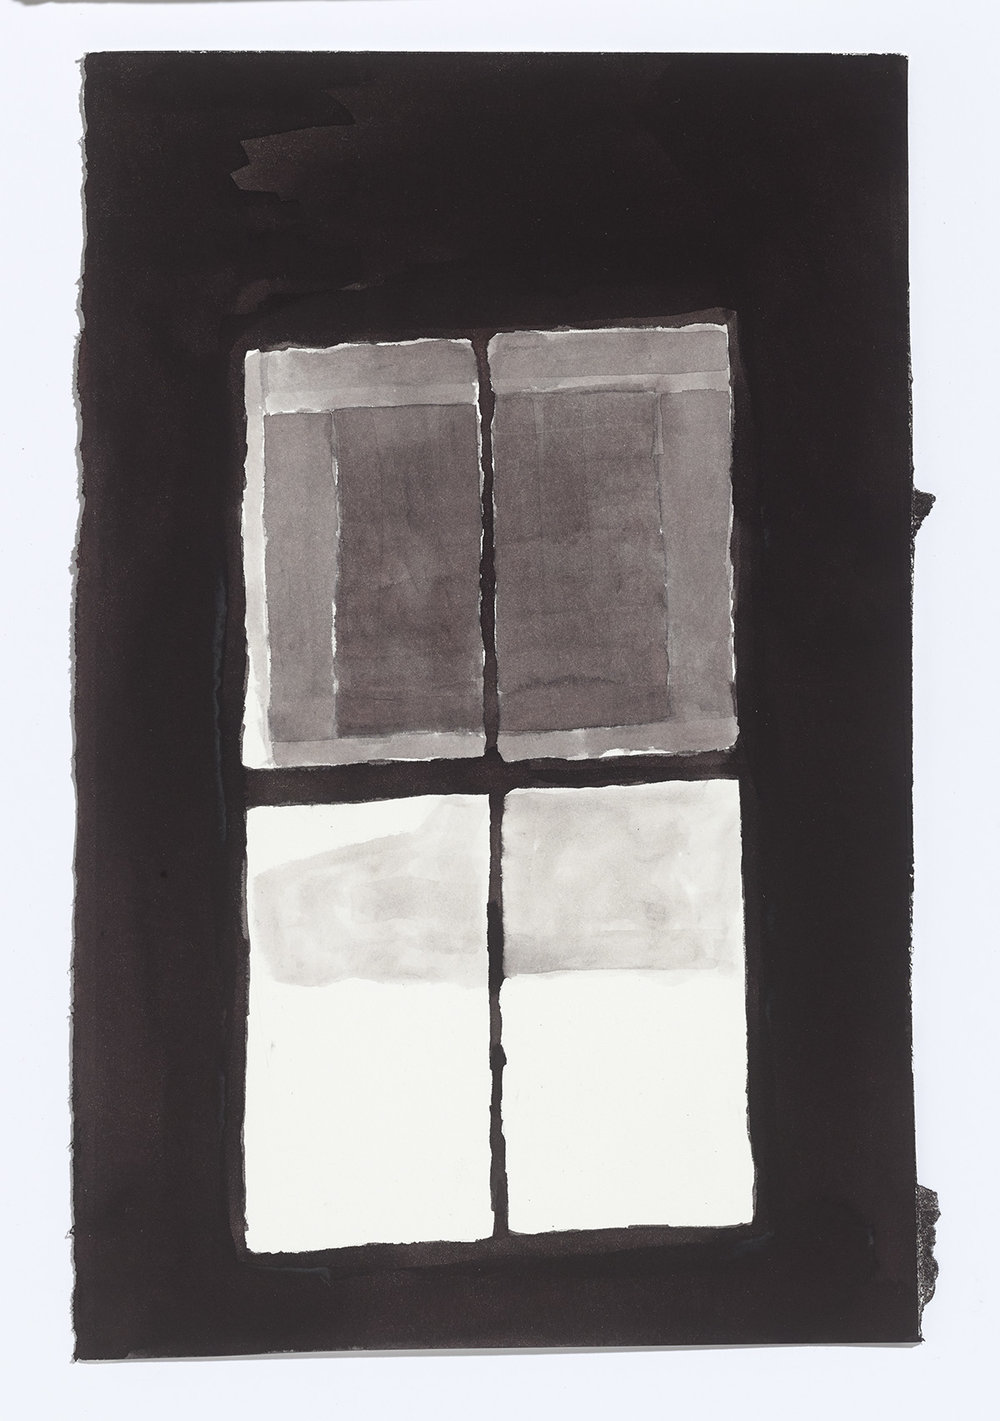 Water Street Window, 2017, ink on paper, 13 x 8.5 in